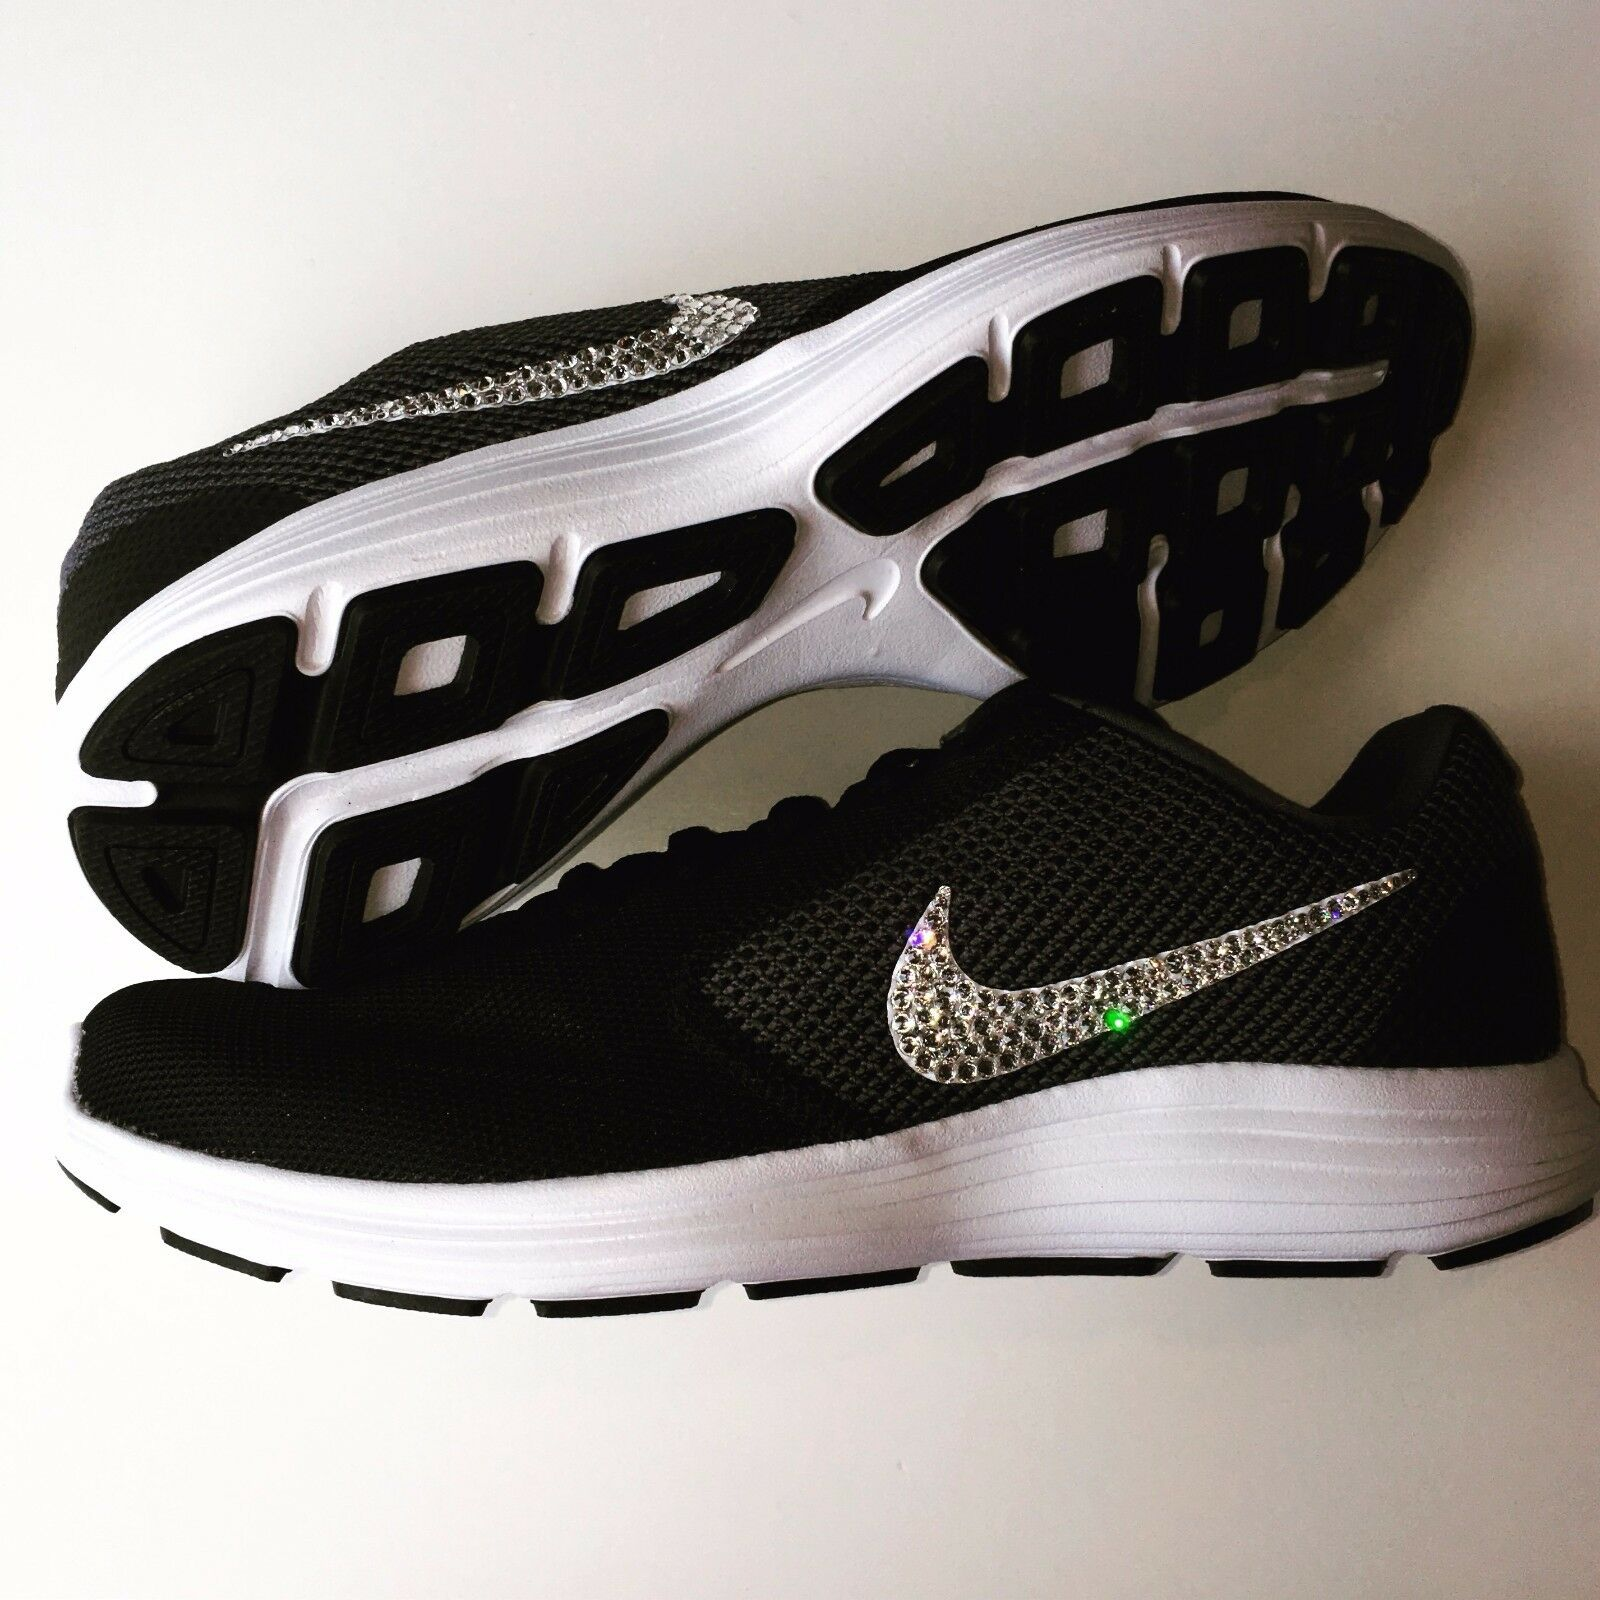 NWT Bling Women's Nike Revolution 3 shoes w w w  Swarovski Crystal Swooshes - Black 8c9b37